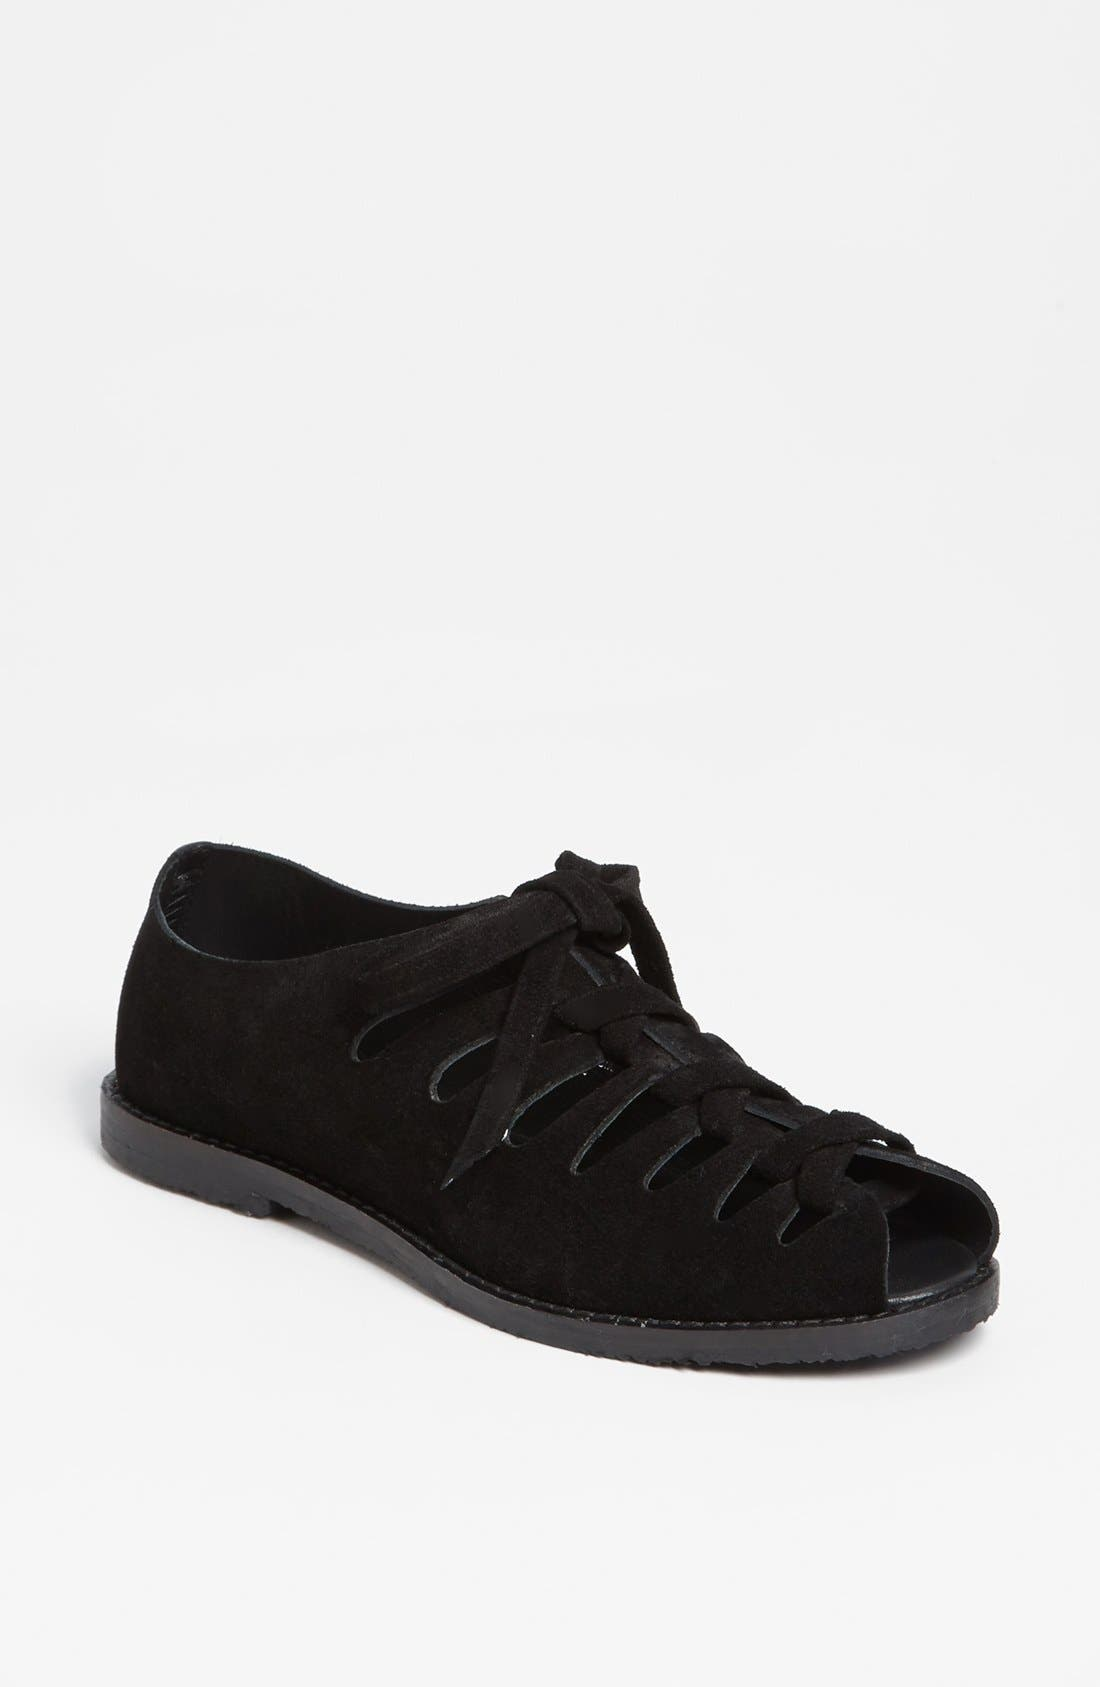 Alternate Image 1 Selected - Topshop 'Keep' Flat